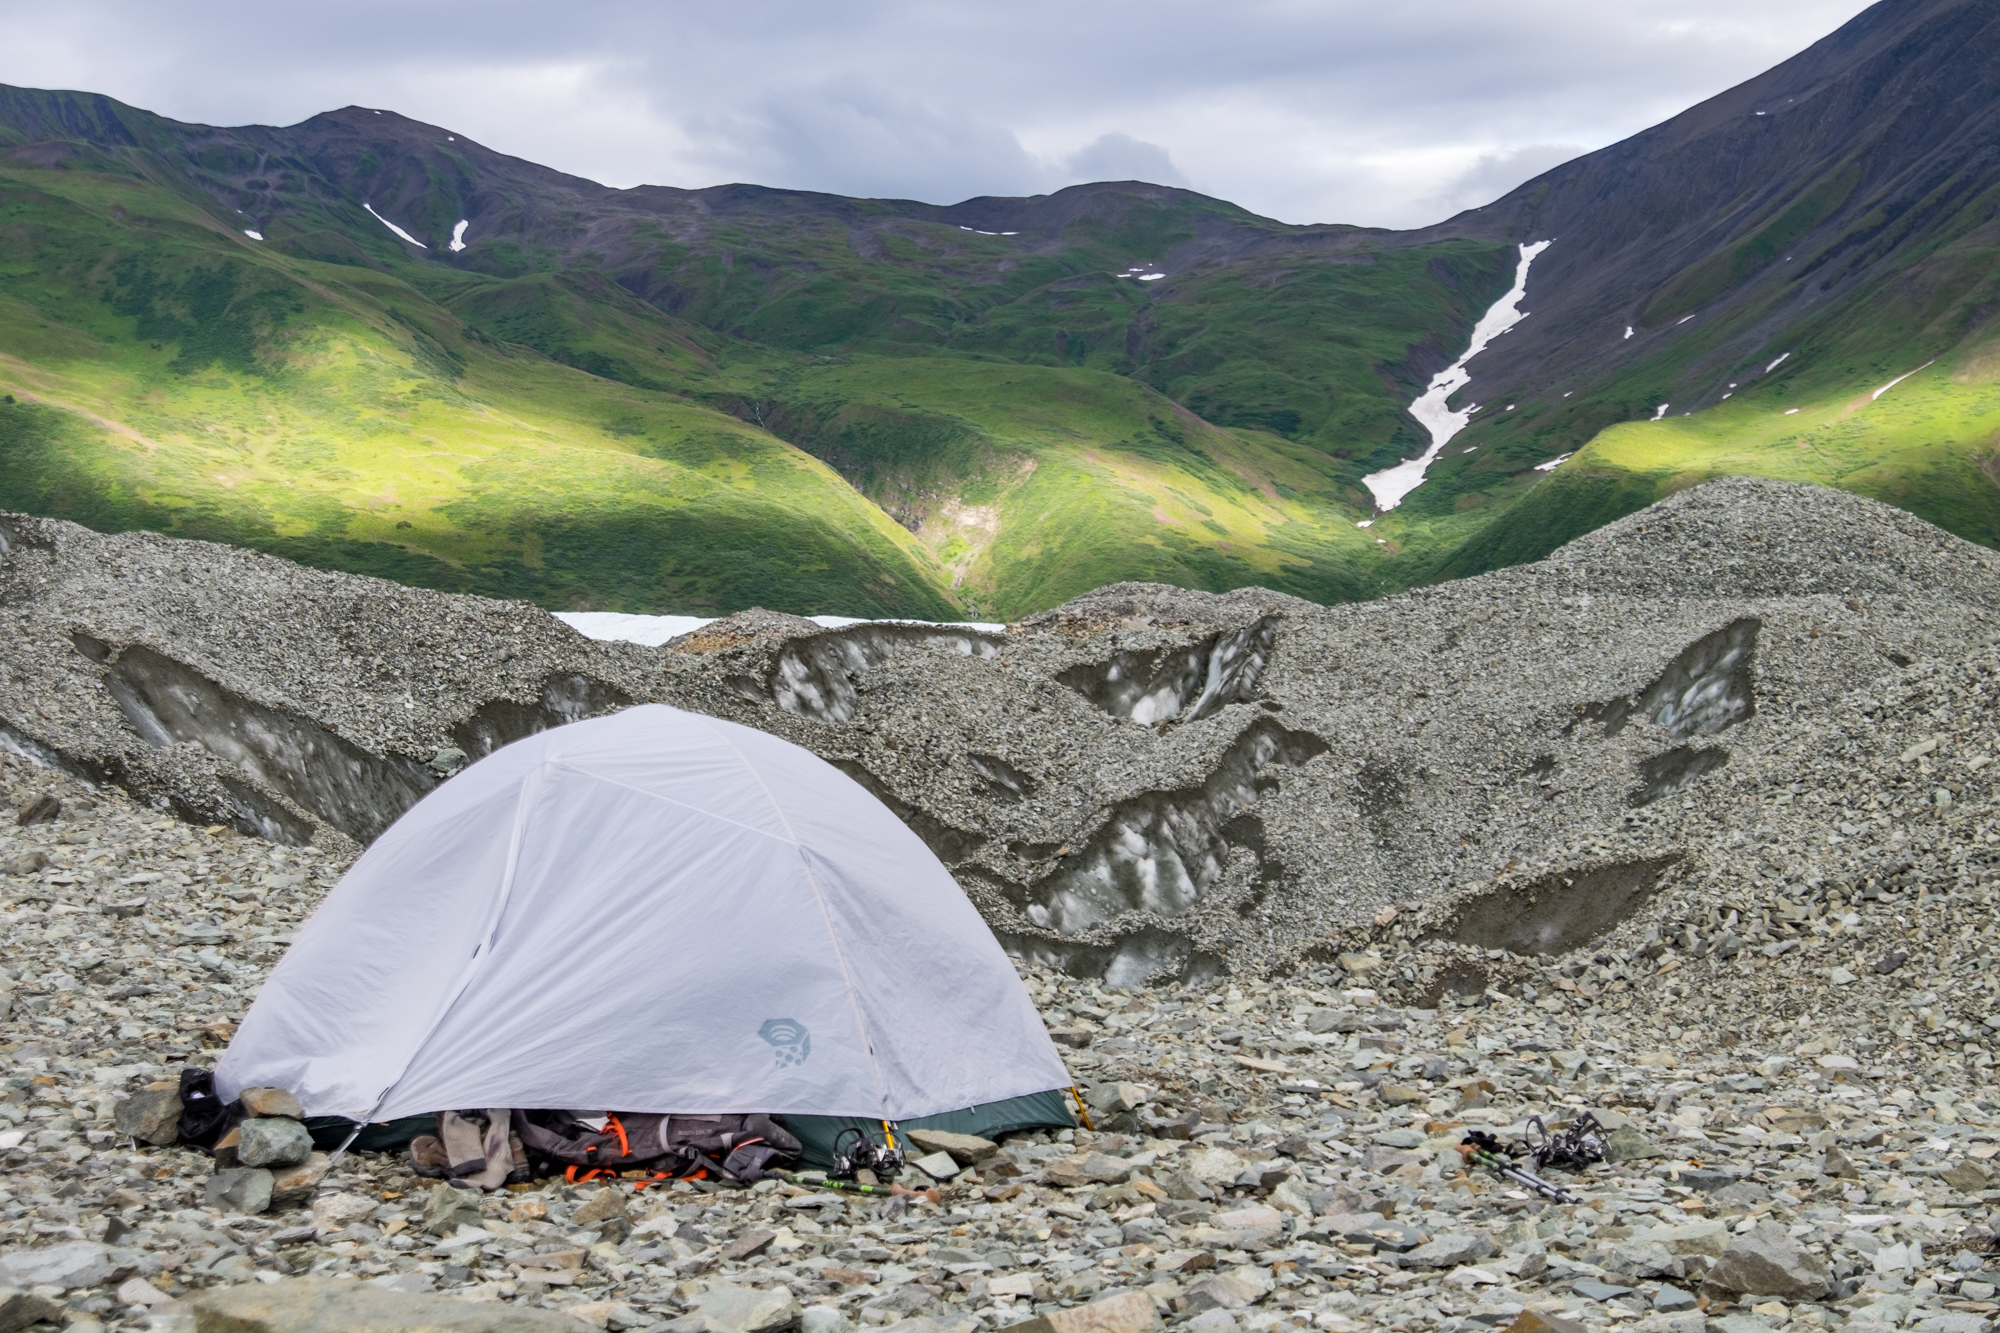 Set up on top of a glacier high in the backcountry, our Mountain Hardwear Ghost Sky 3 tent lives up to its name.